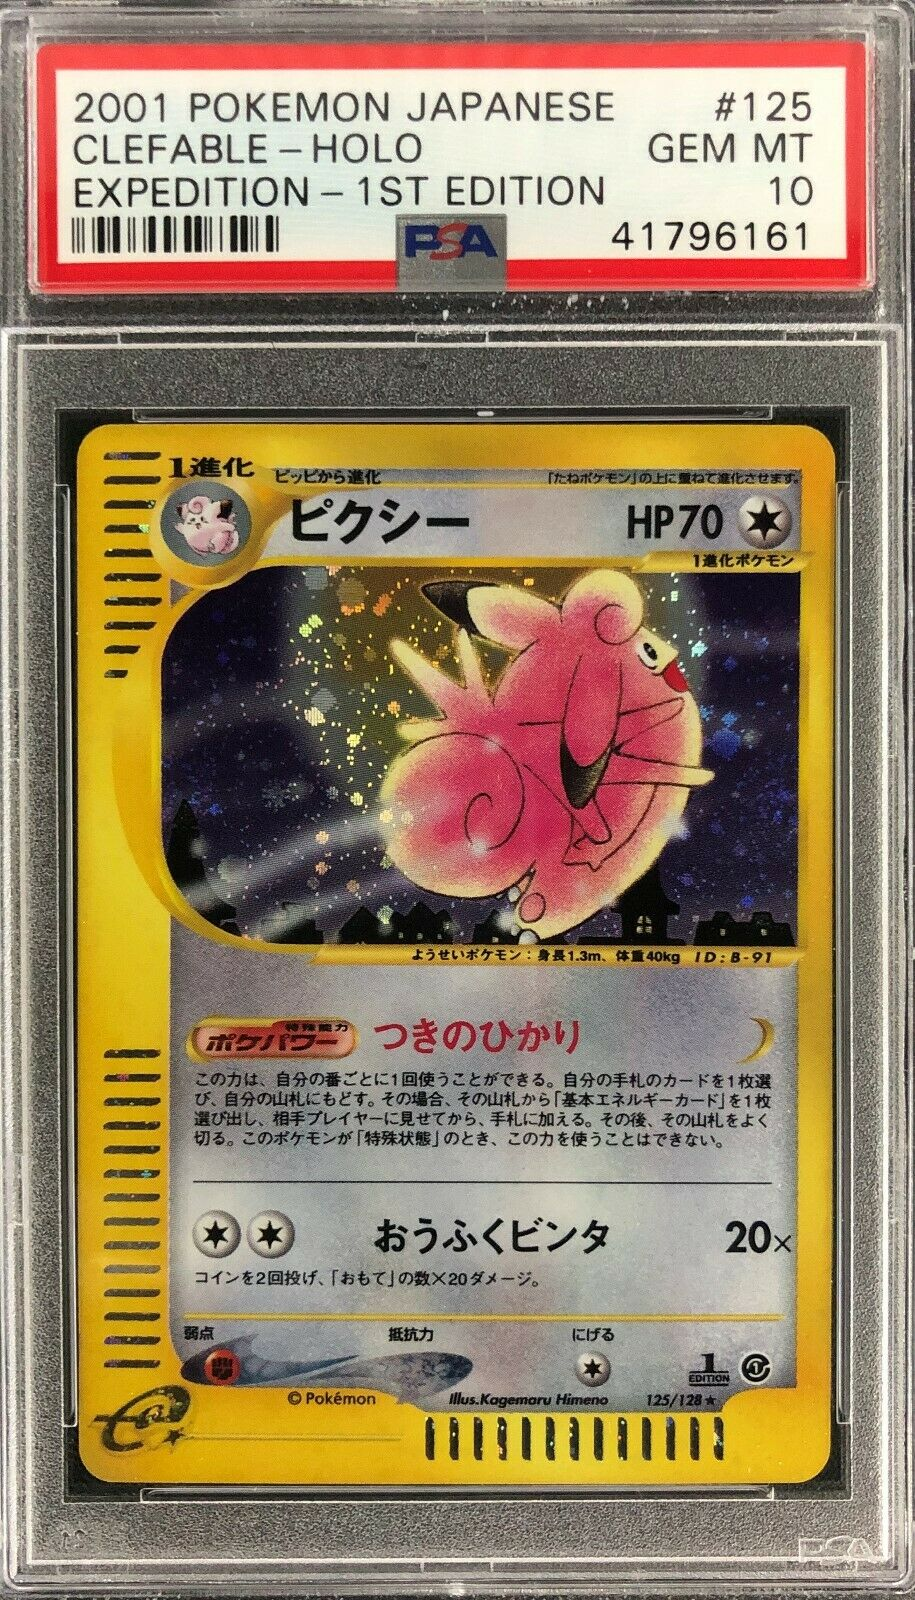 1st Edition Japanese Clefable Expedition Holo Shiny Pokemon Card Mint PSA 10